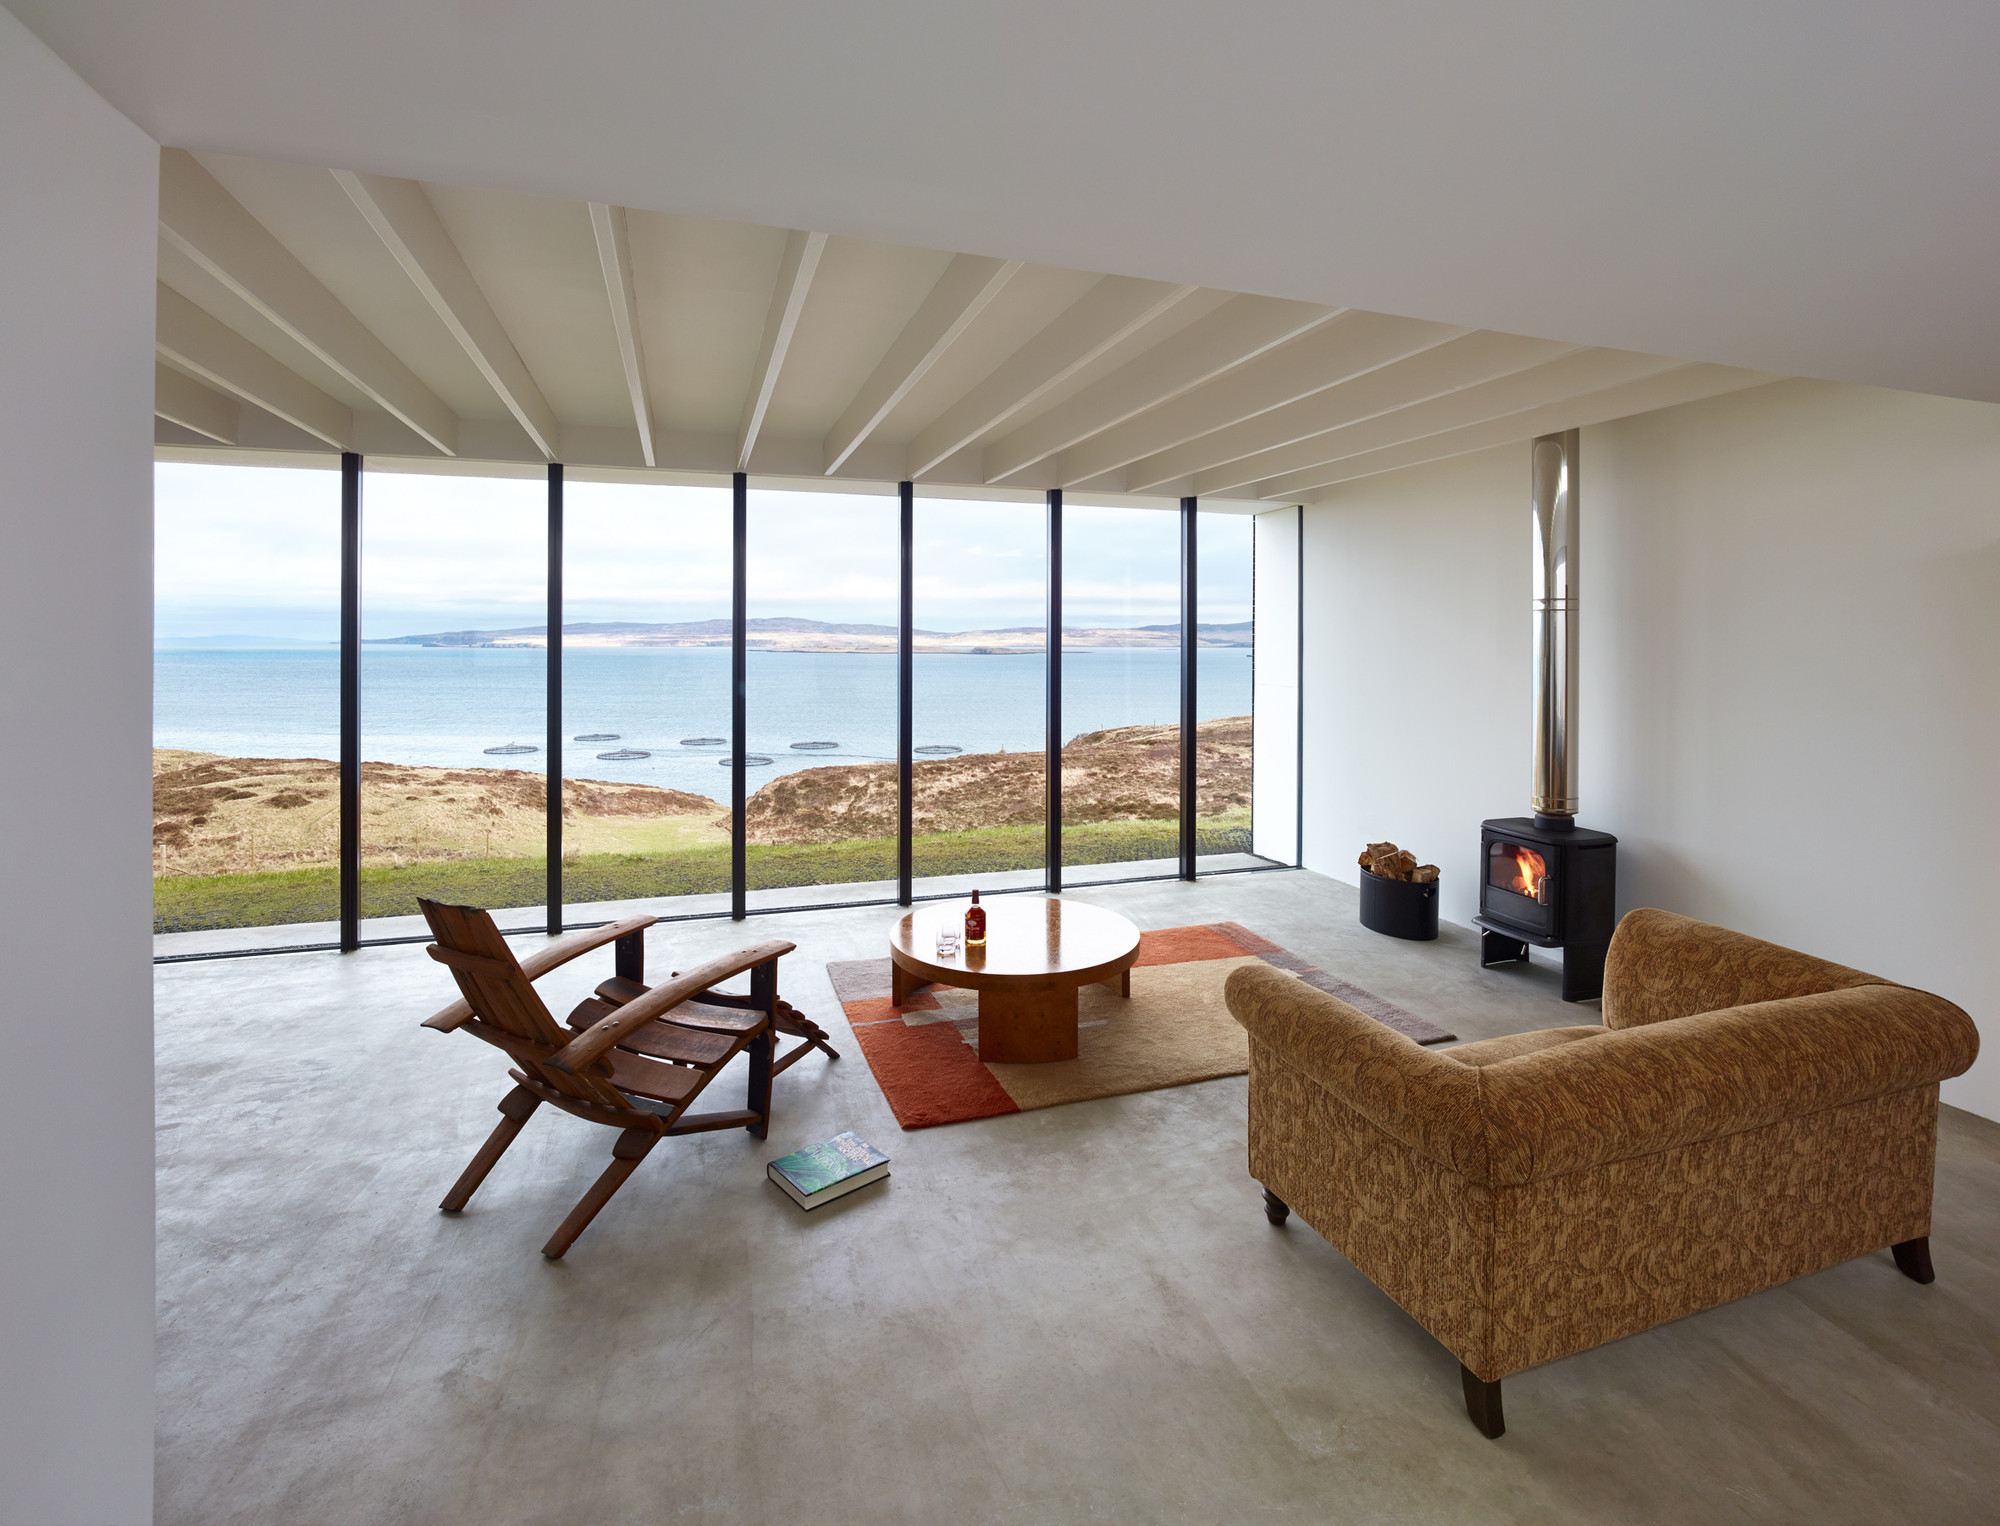 Cliff House / Dualchas Architects. Image © Dualchas Architects